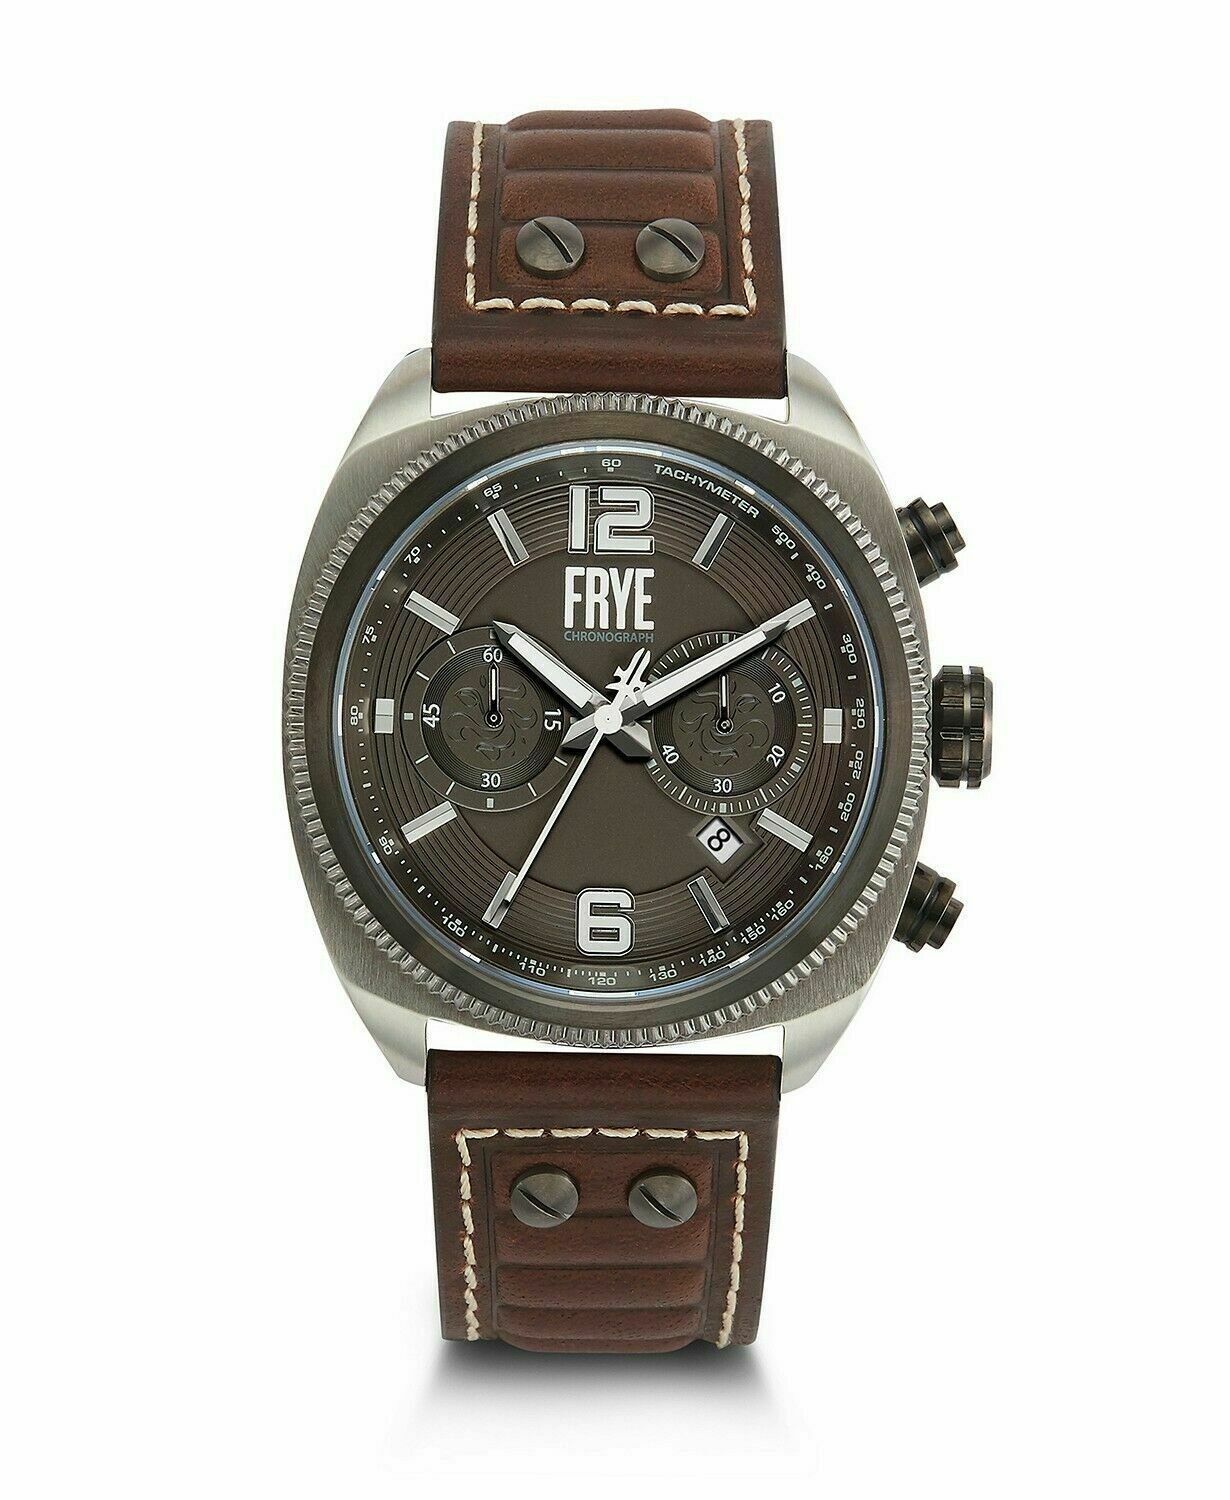 Primary image for BRAND NEW FRYE 37FR00008-04 MOTO ENGINEER CHRONO BROWN LEATHER STEEL MEN'S WATCH